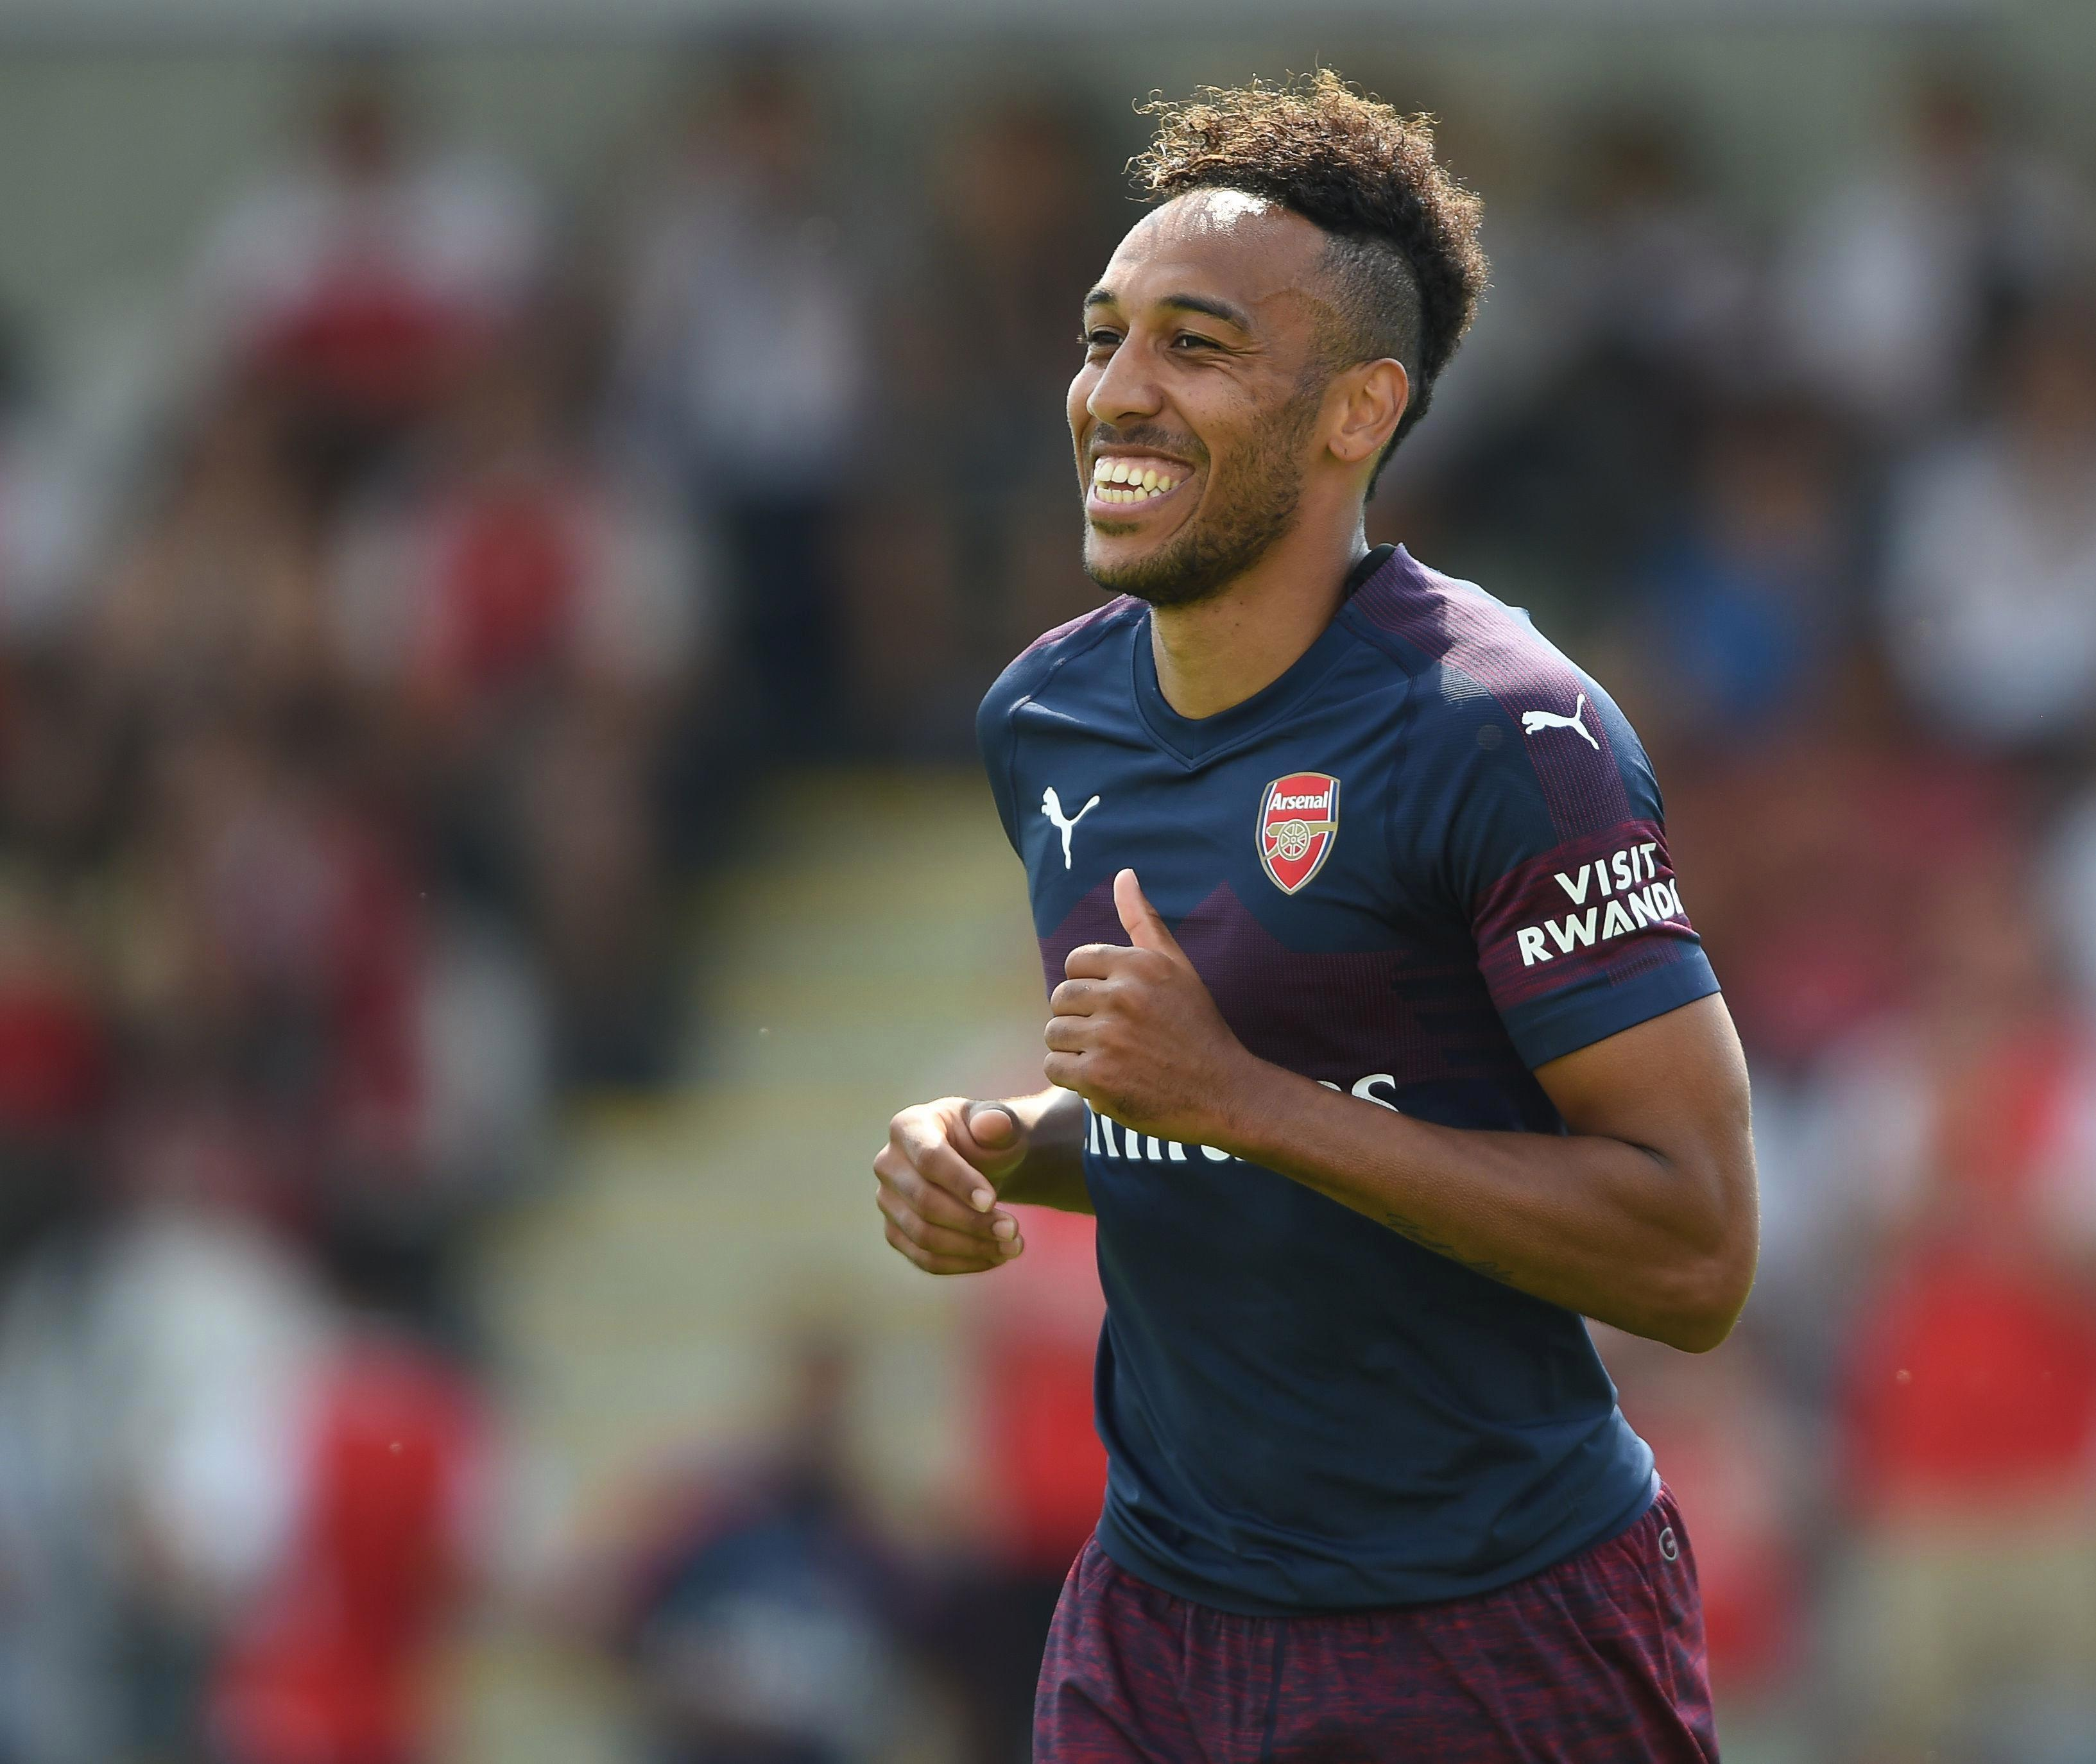 Aubameyang kicked off the Unai Emery era with a hat-trick against Boreham Wood